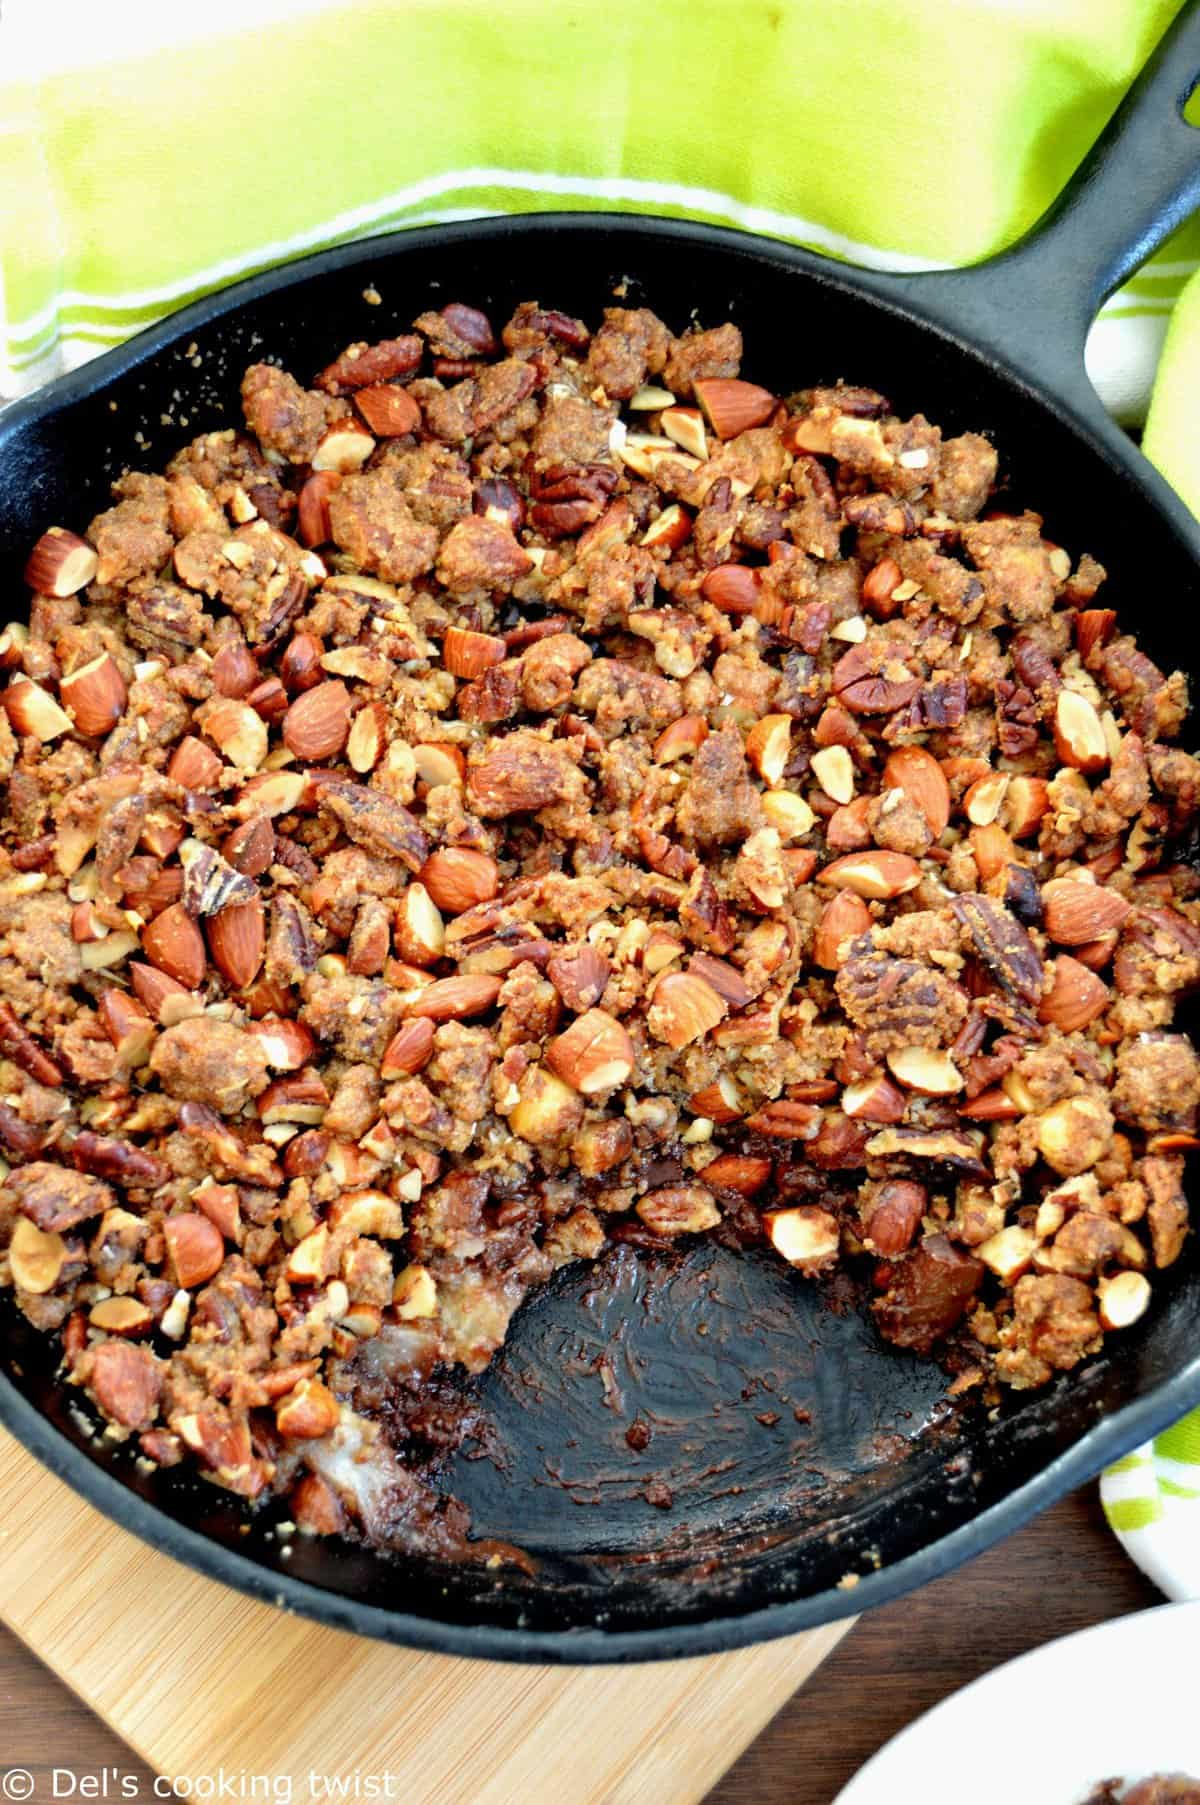 Crunchy pecan pear chocolate crumble